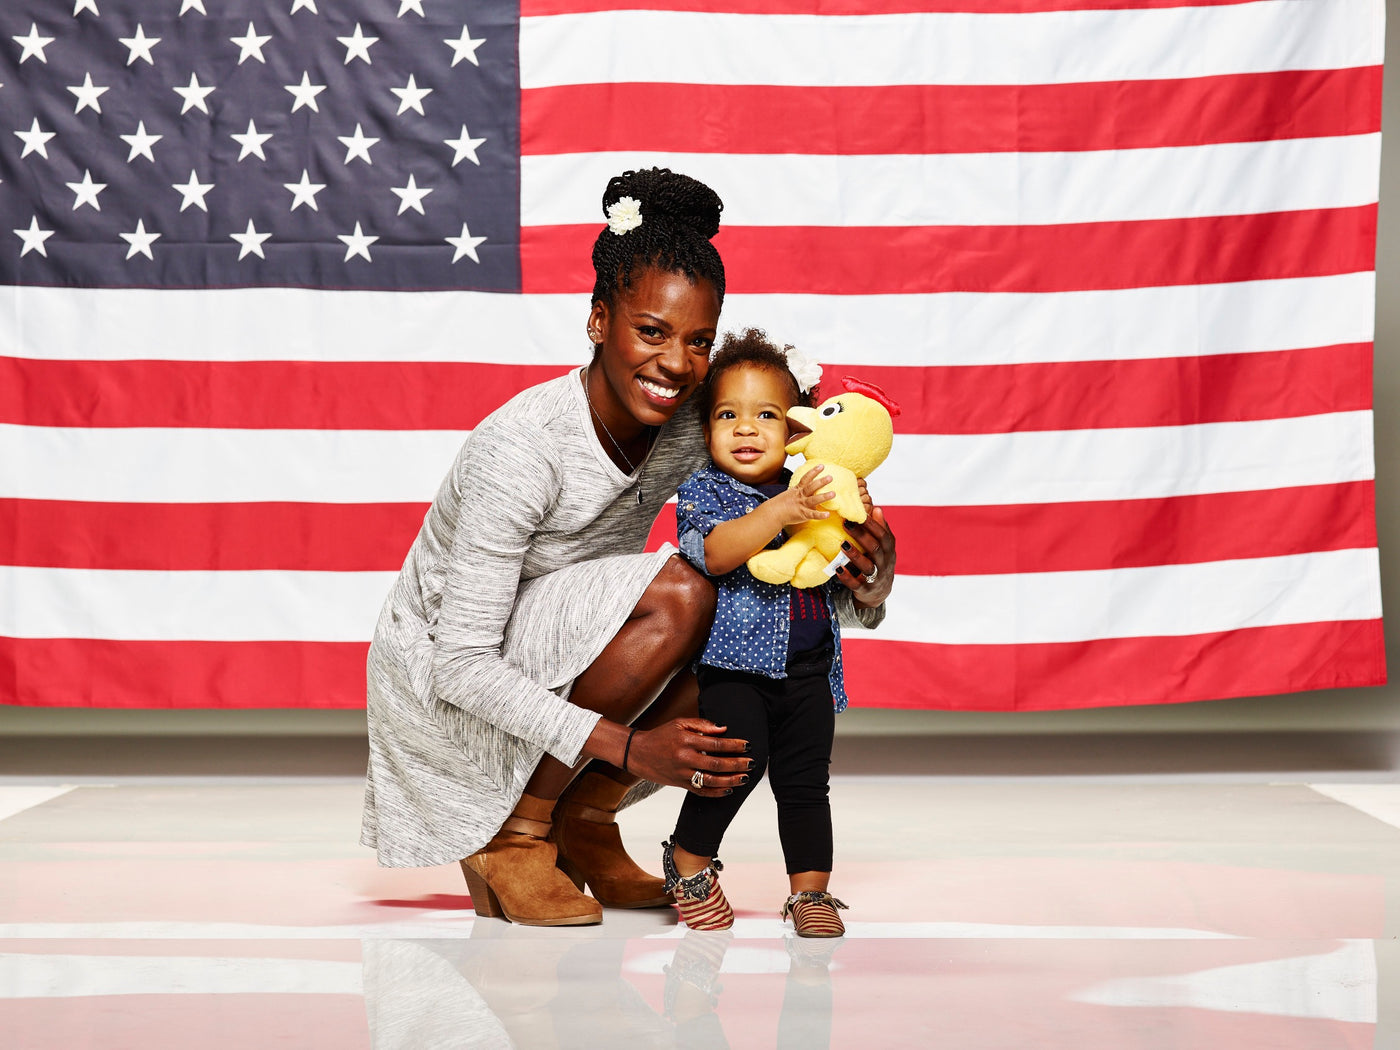 Alysia Montano and child in front of the American flag